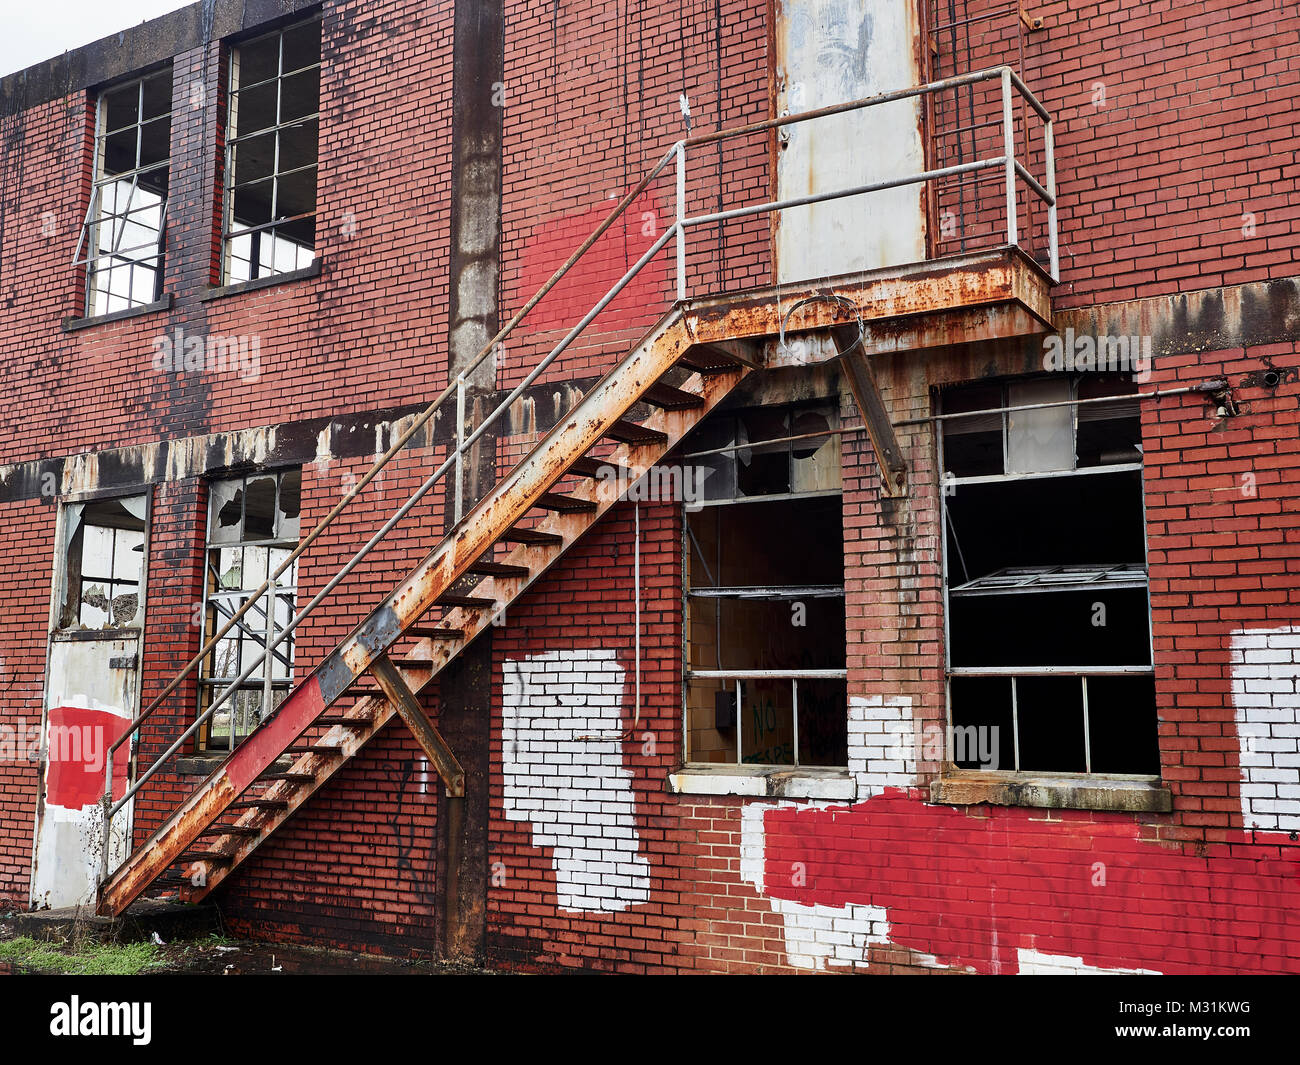 Second floor fire escape exterior of a run down abandoned building that is rusting and part of urban decay in Montgomery - Stock Image